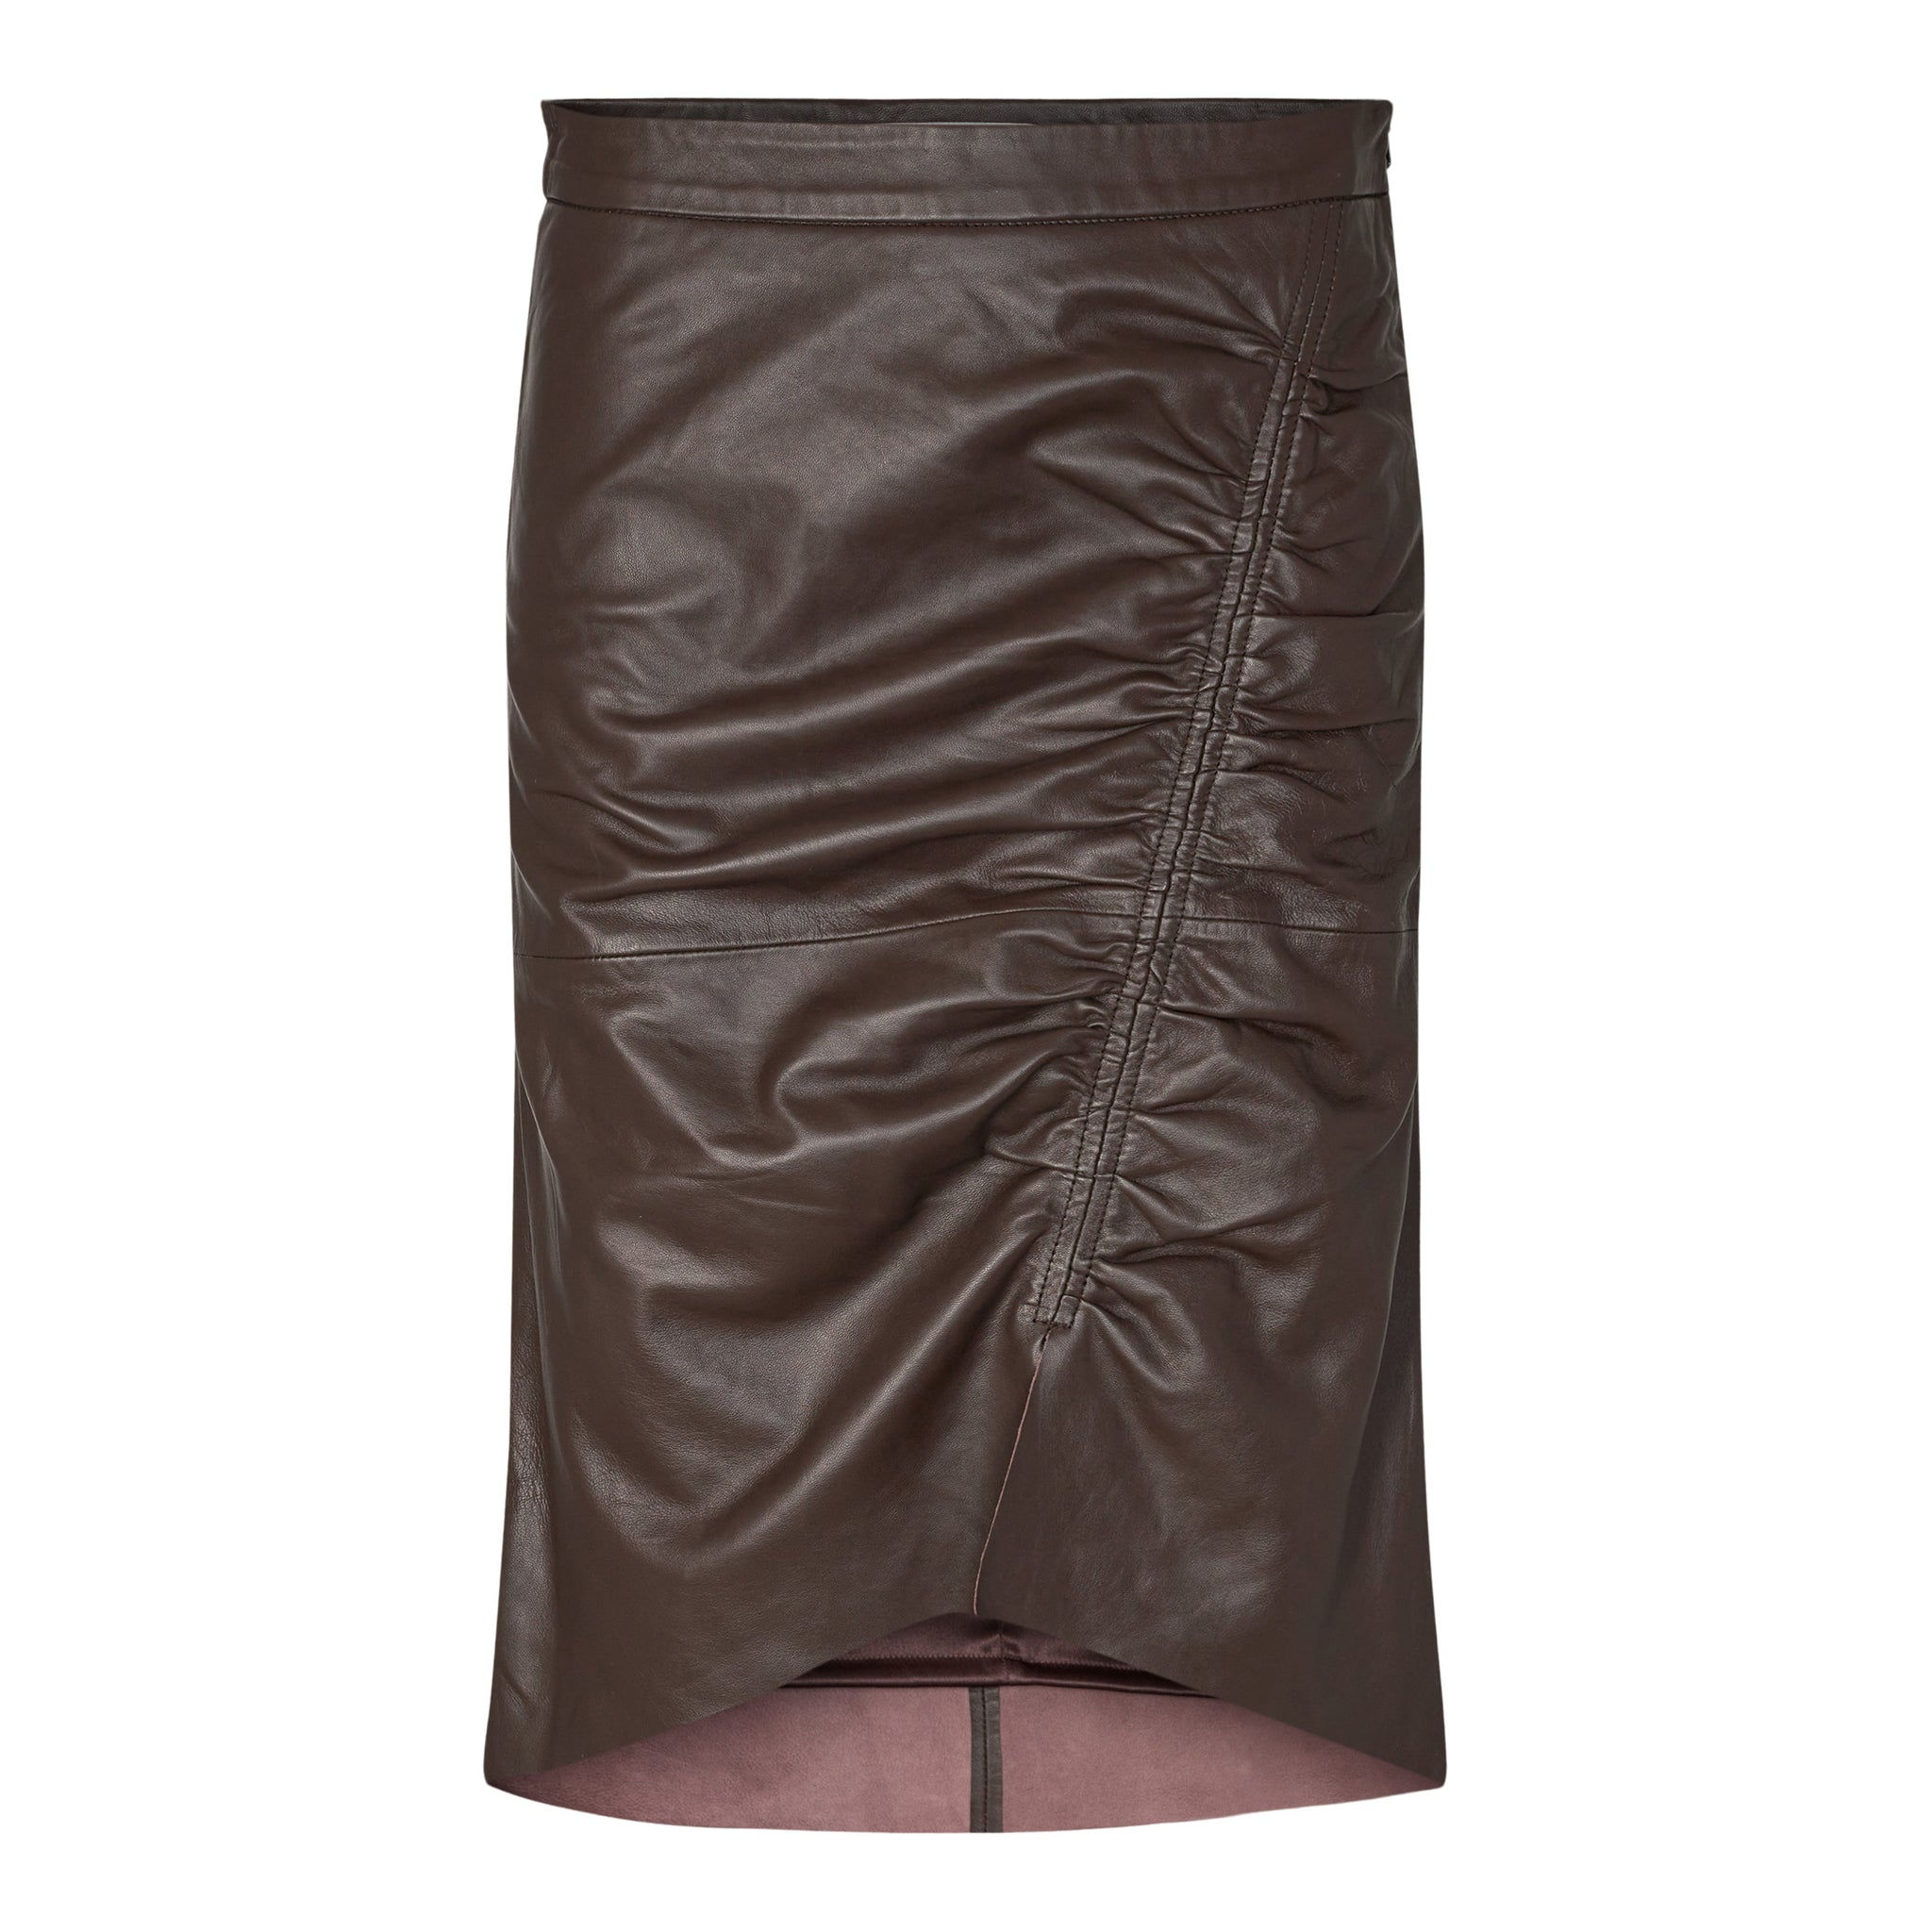 Harvie Leather Skirt Brown